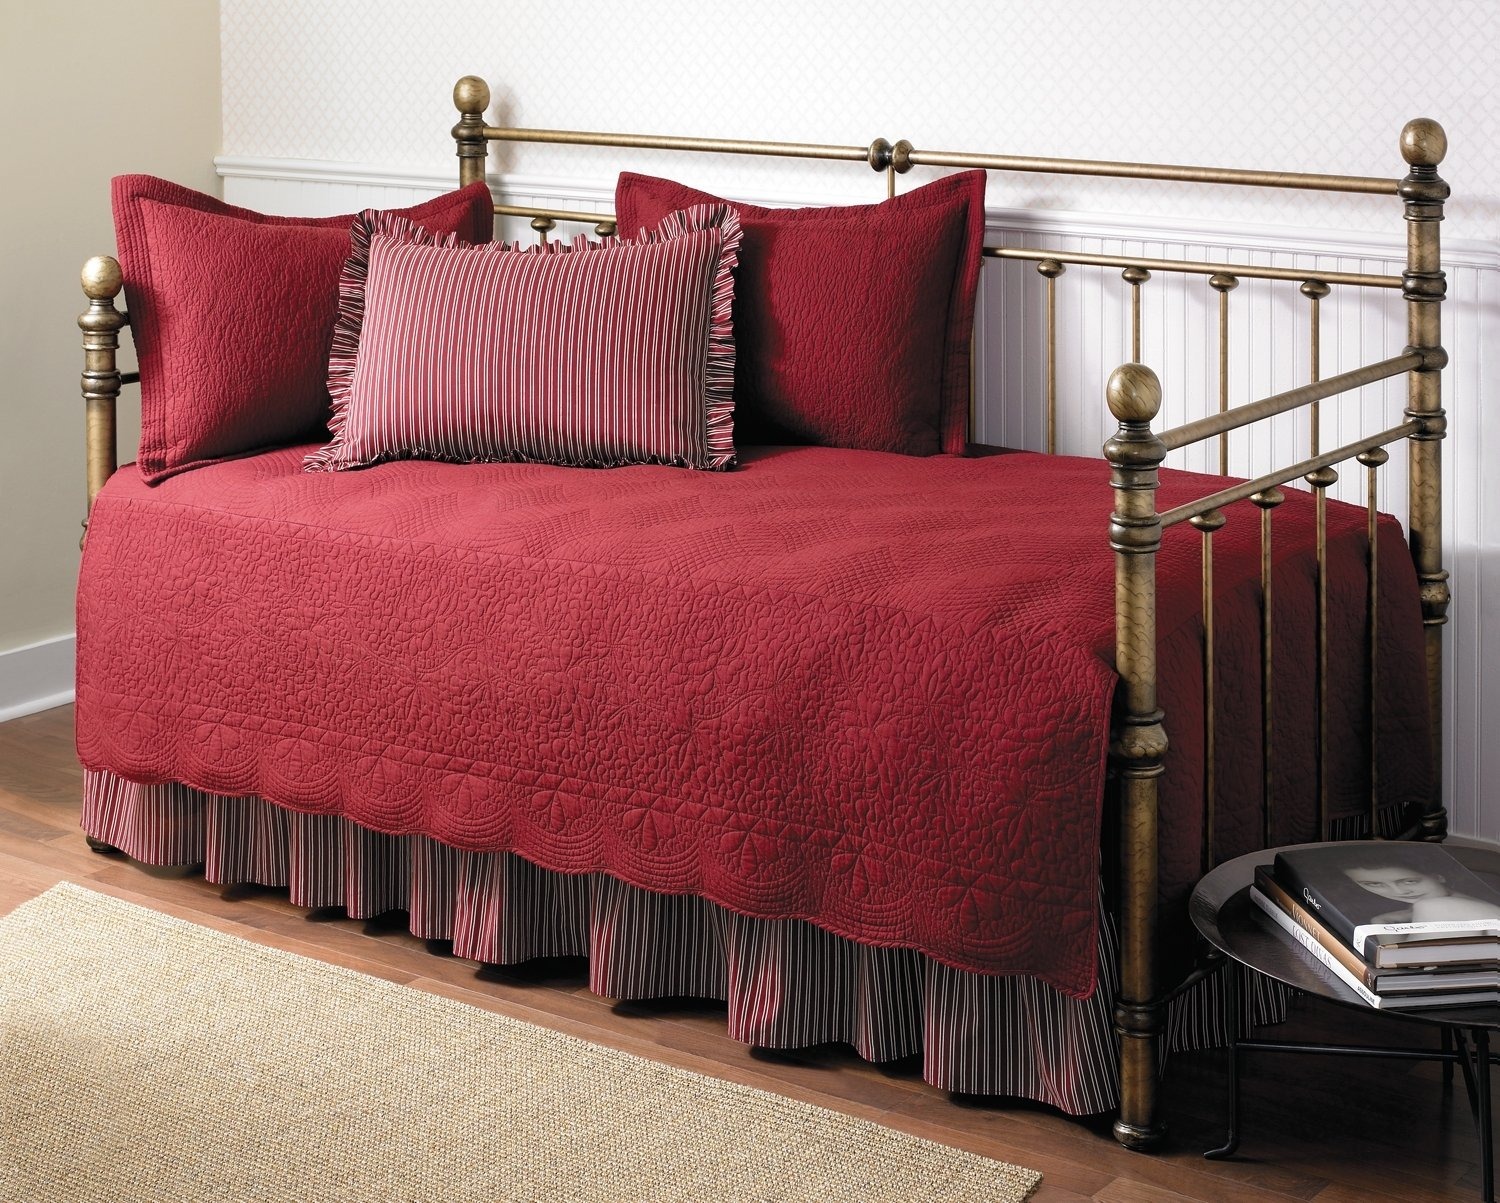 Modern daybed bedding - Stone Cottage Trellis Collection 5 Piece Daybed Set Scarlet